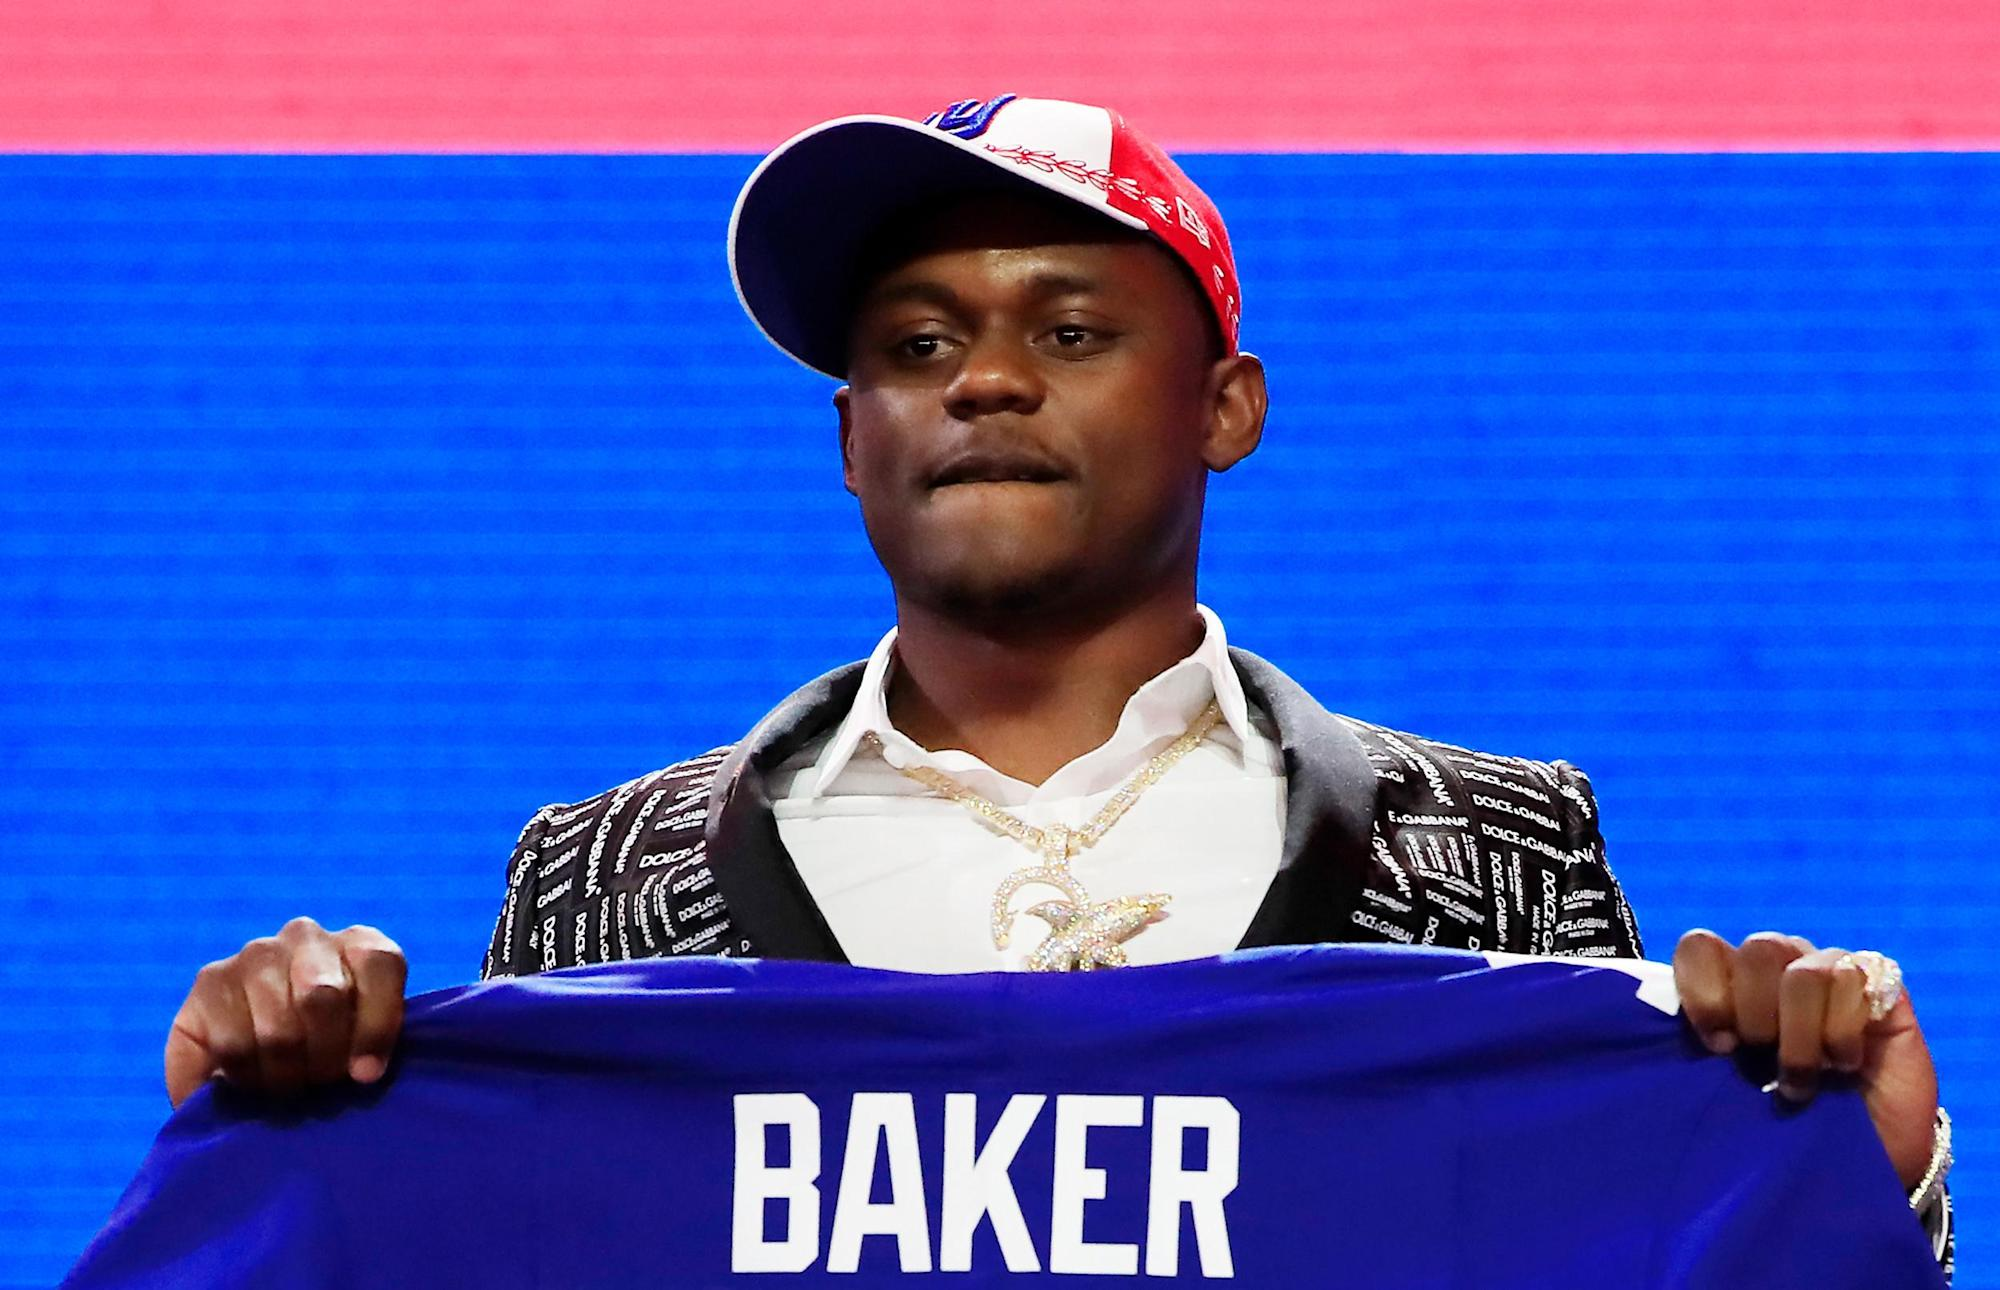 All charges dropped against NFL player DeAndre Baker